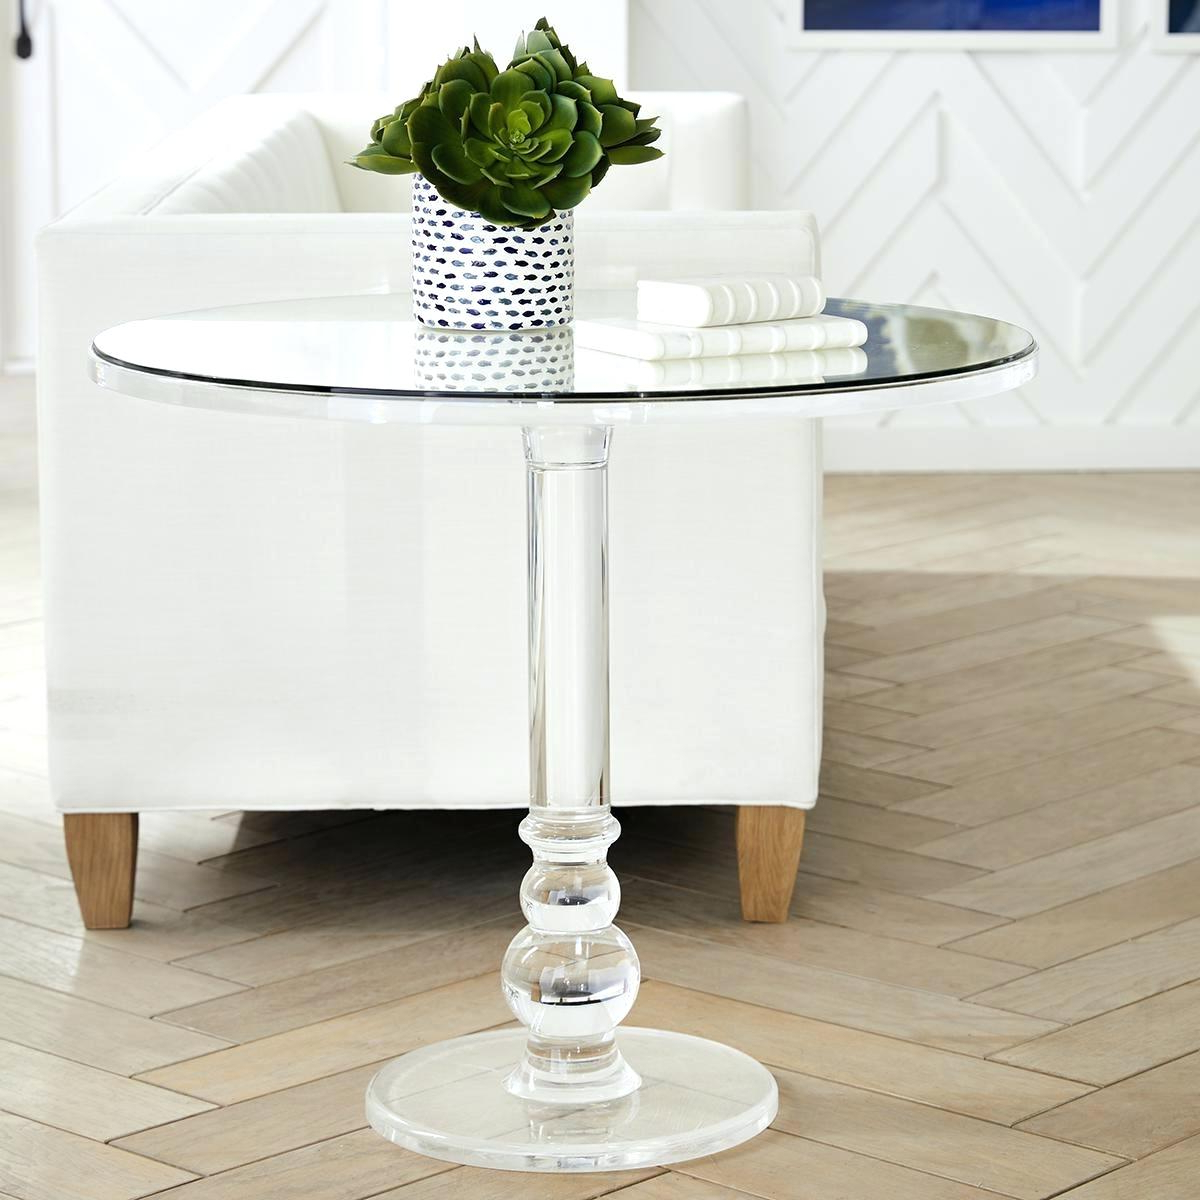 Dawson Pedestal Tables with Well known Pedestal Coffee Table